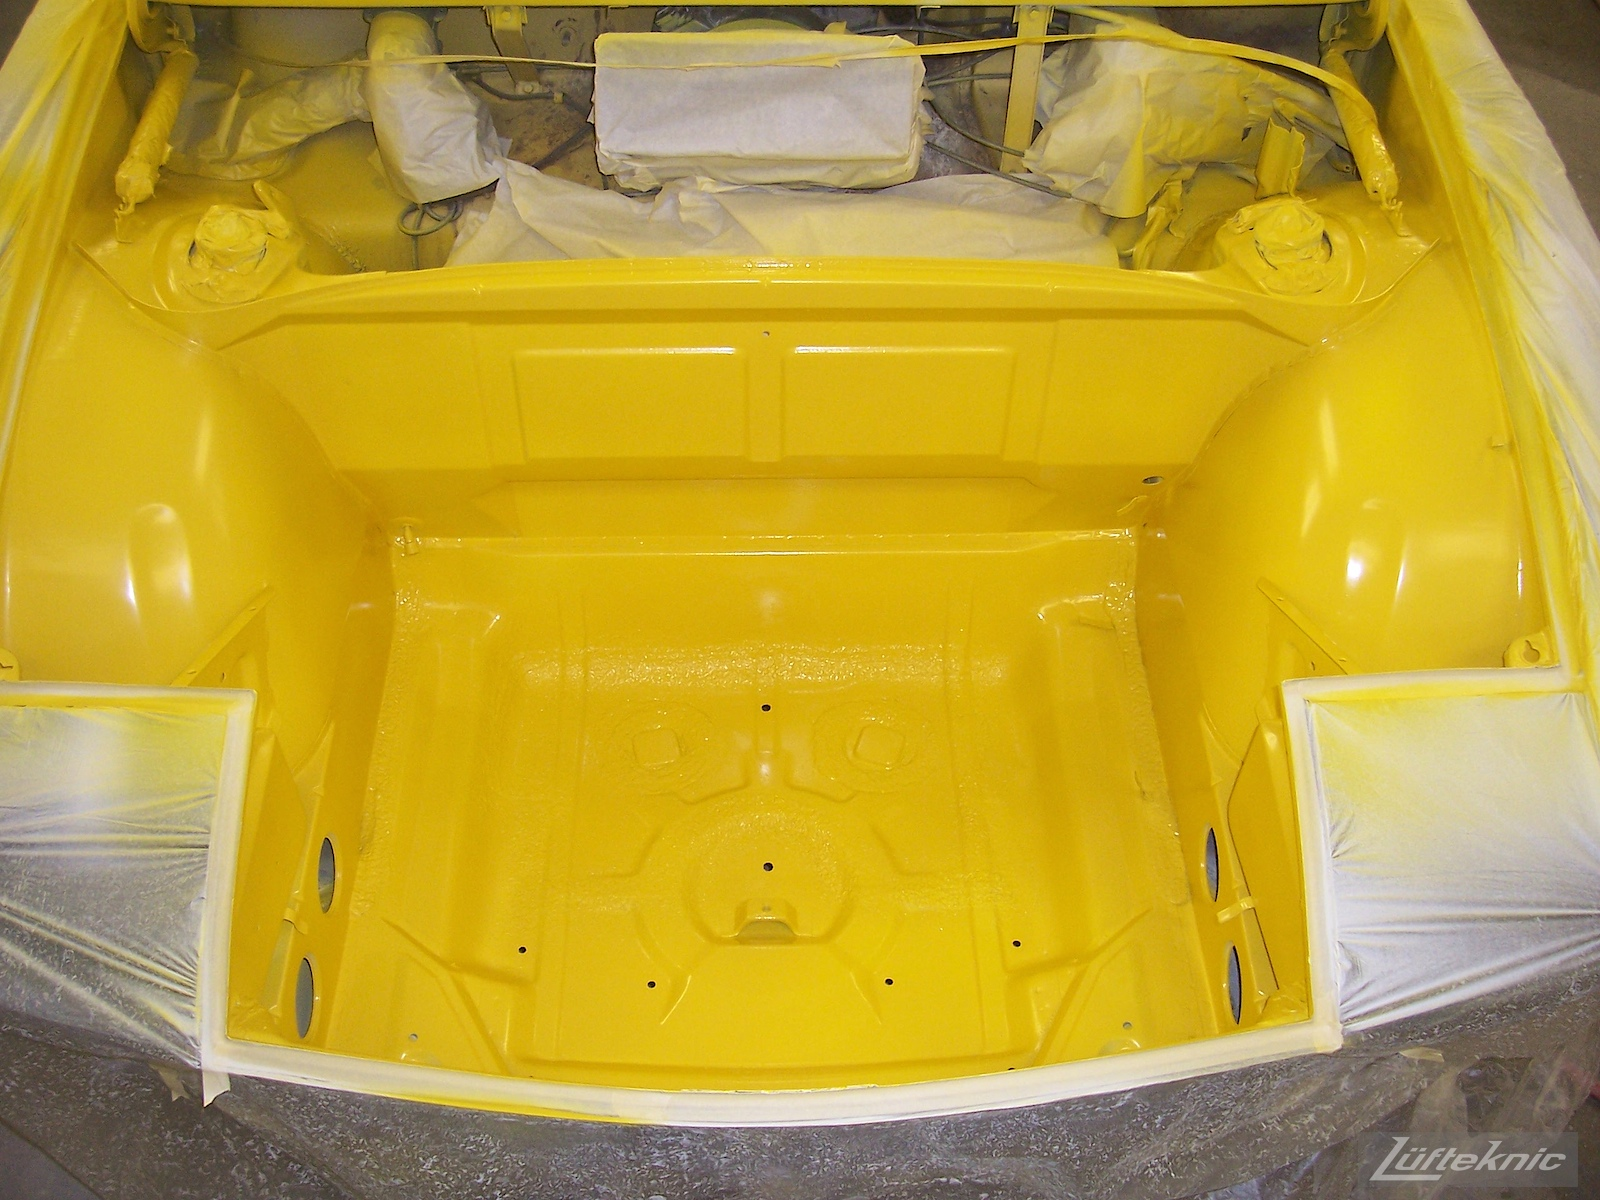 Fresh yellow paint in the front trunk of a Porsche 914 being restored.